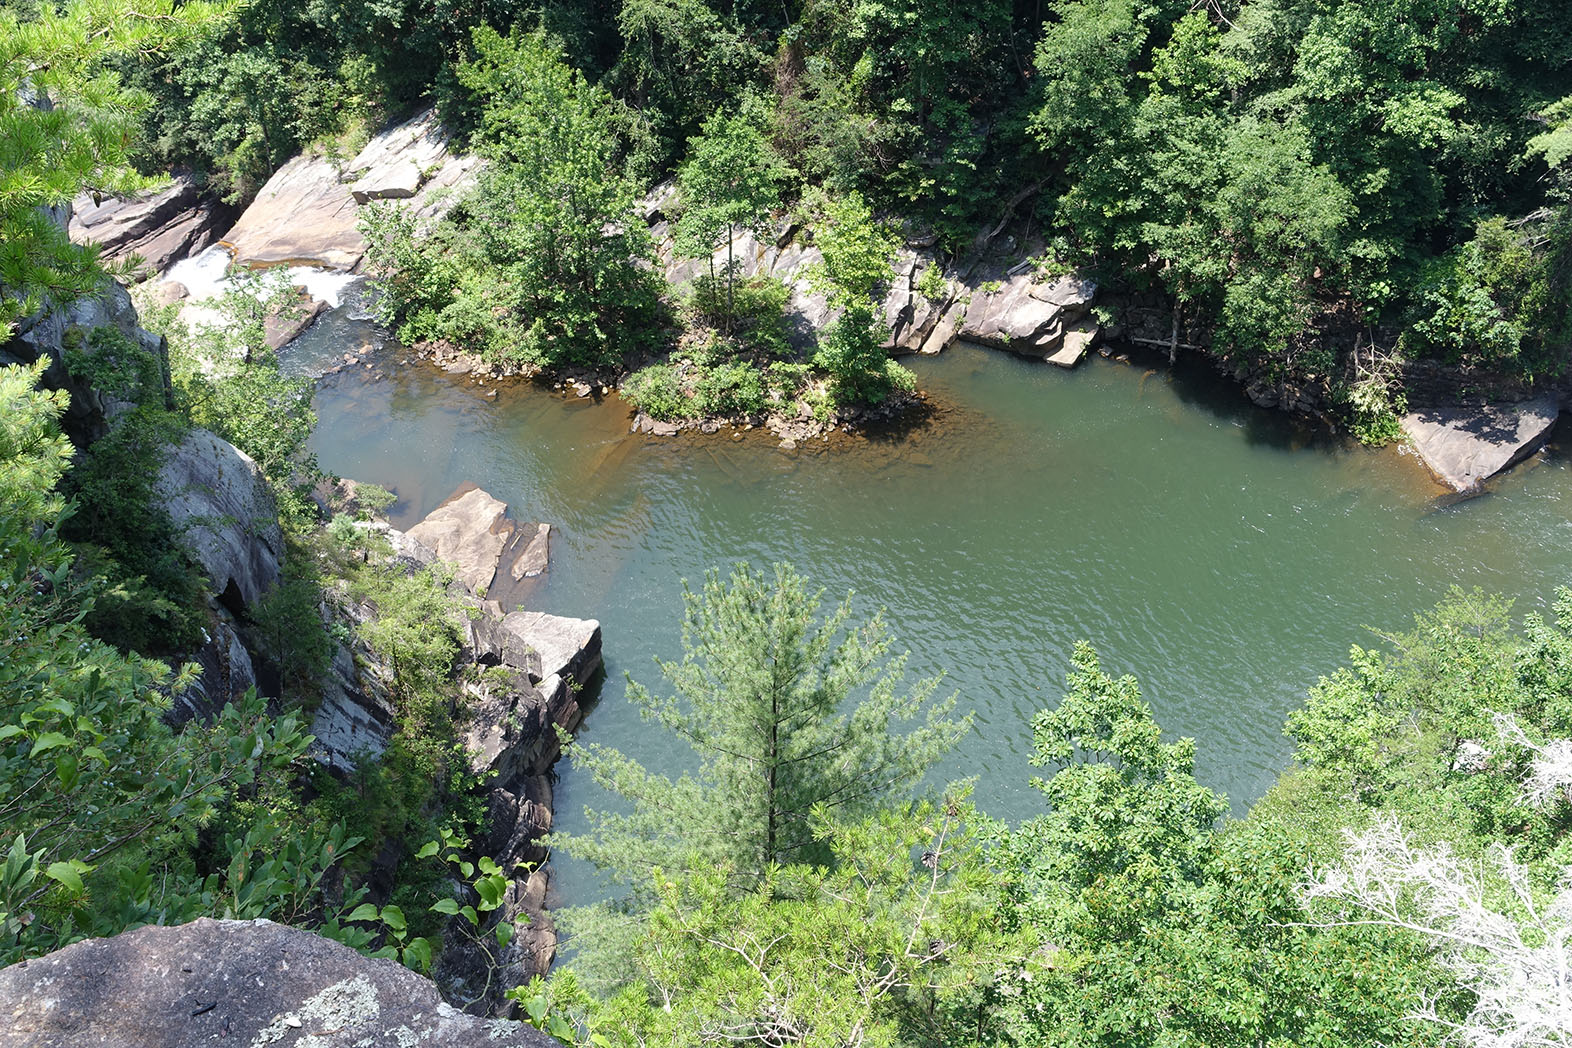 Swimming hole at the bottom of the gorge between the Tallulah Falls